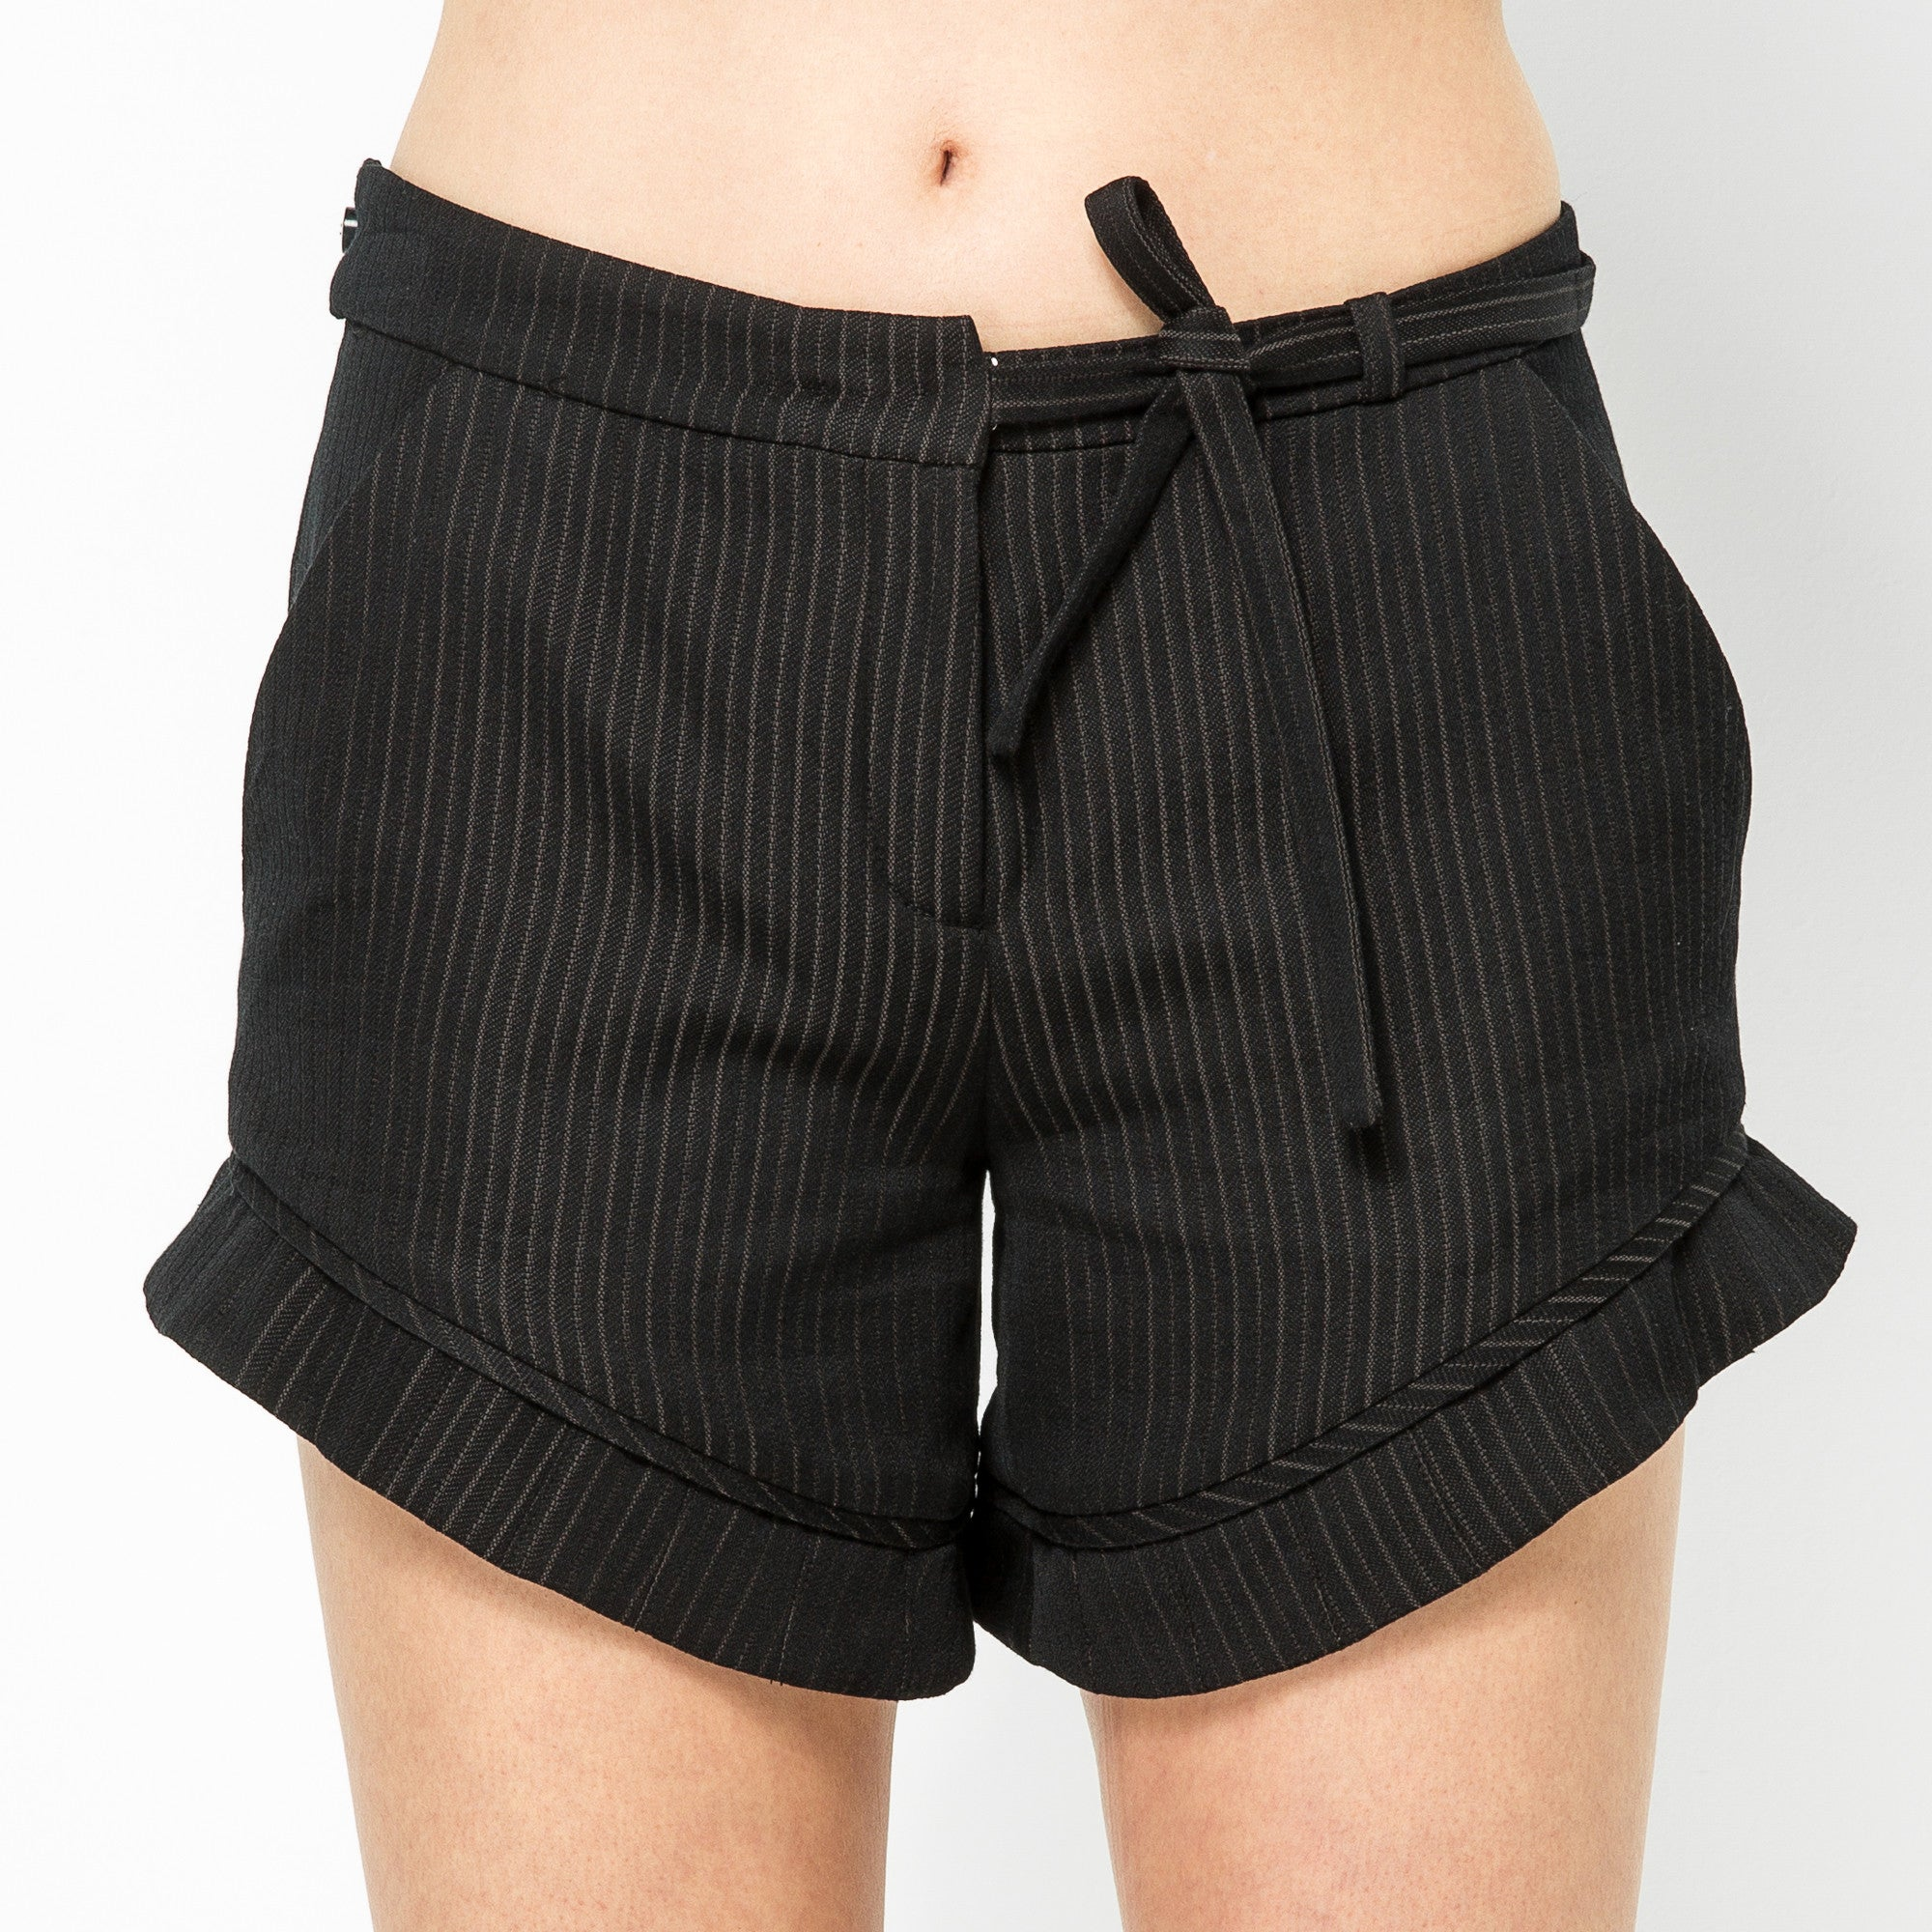 Difference Shorts